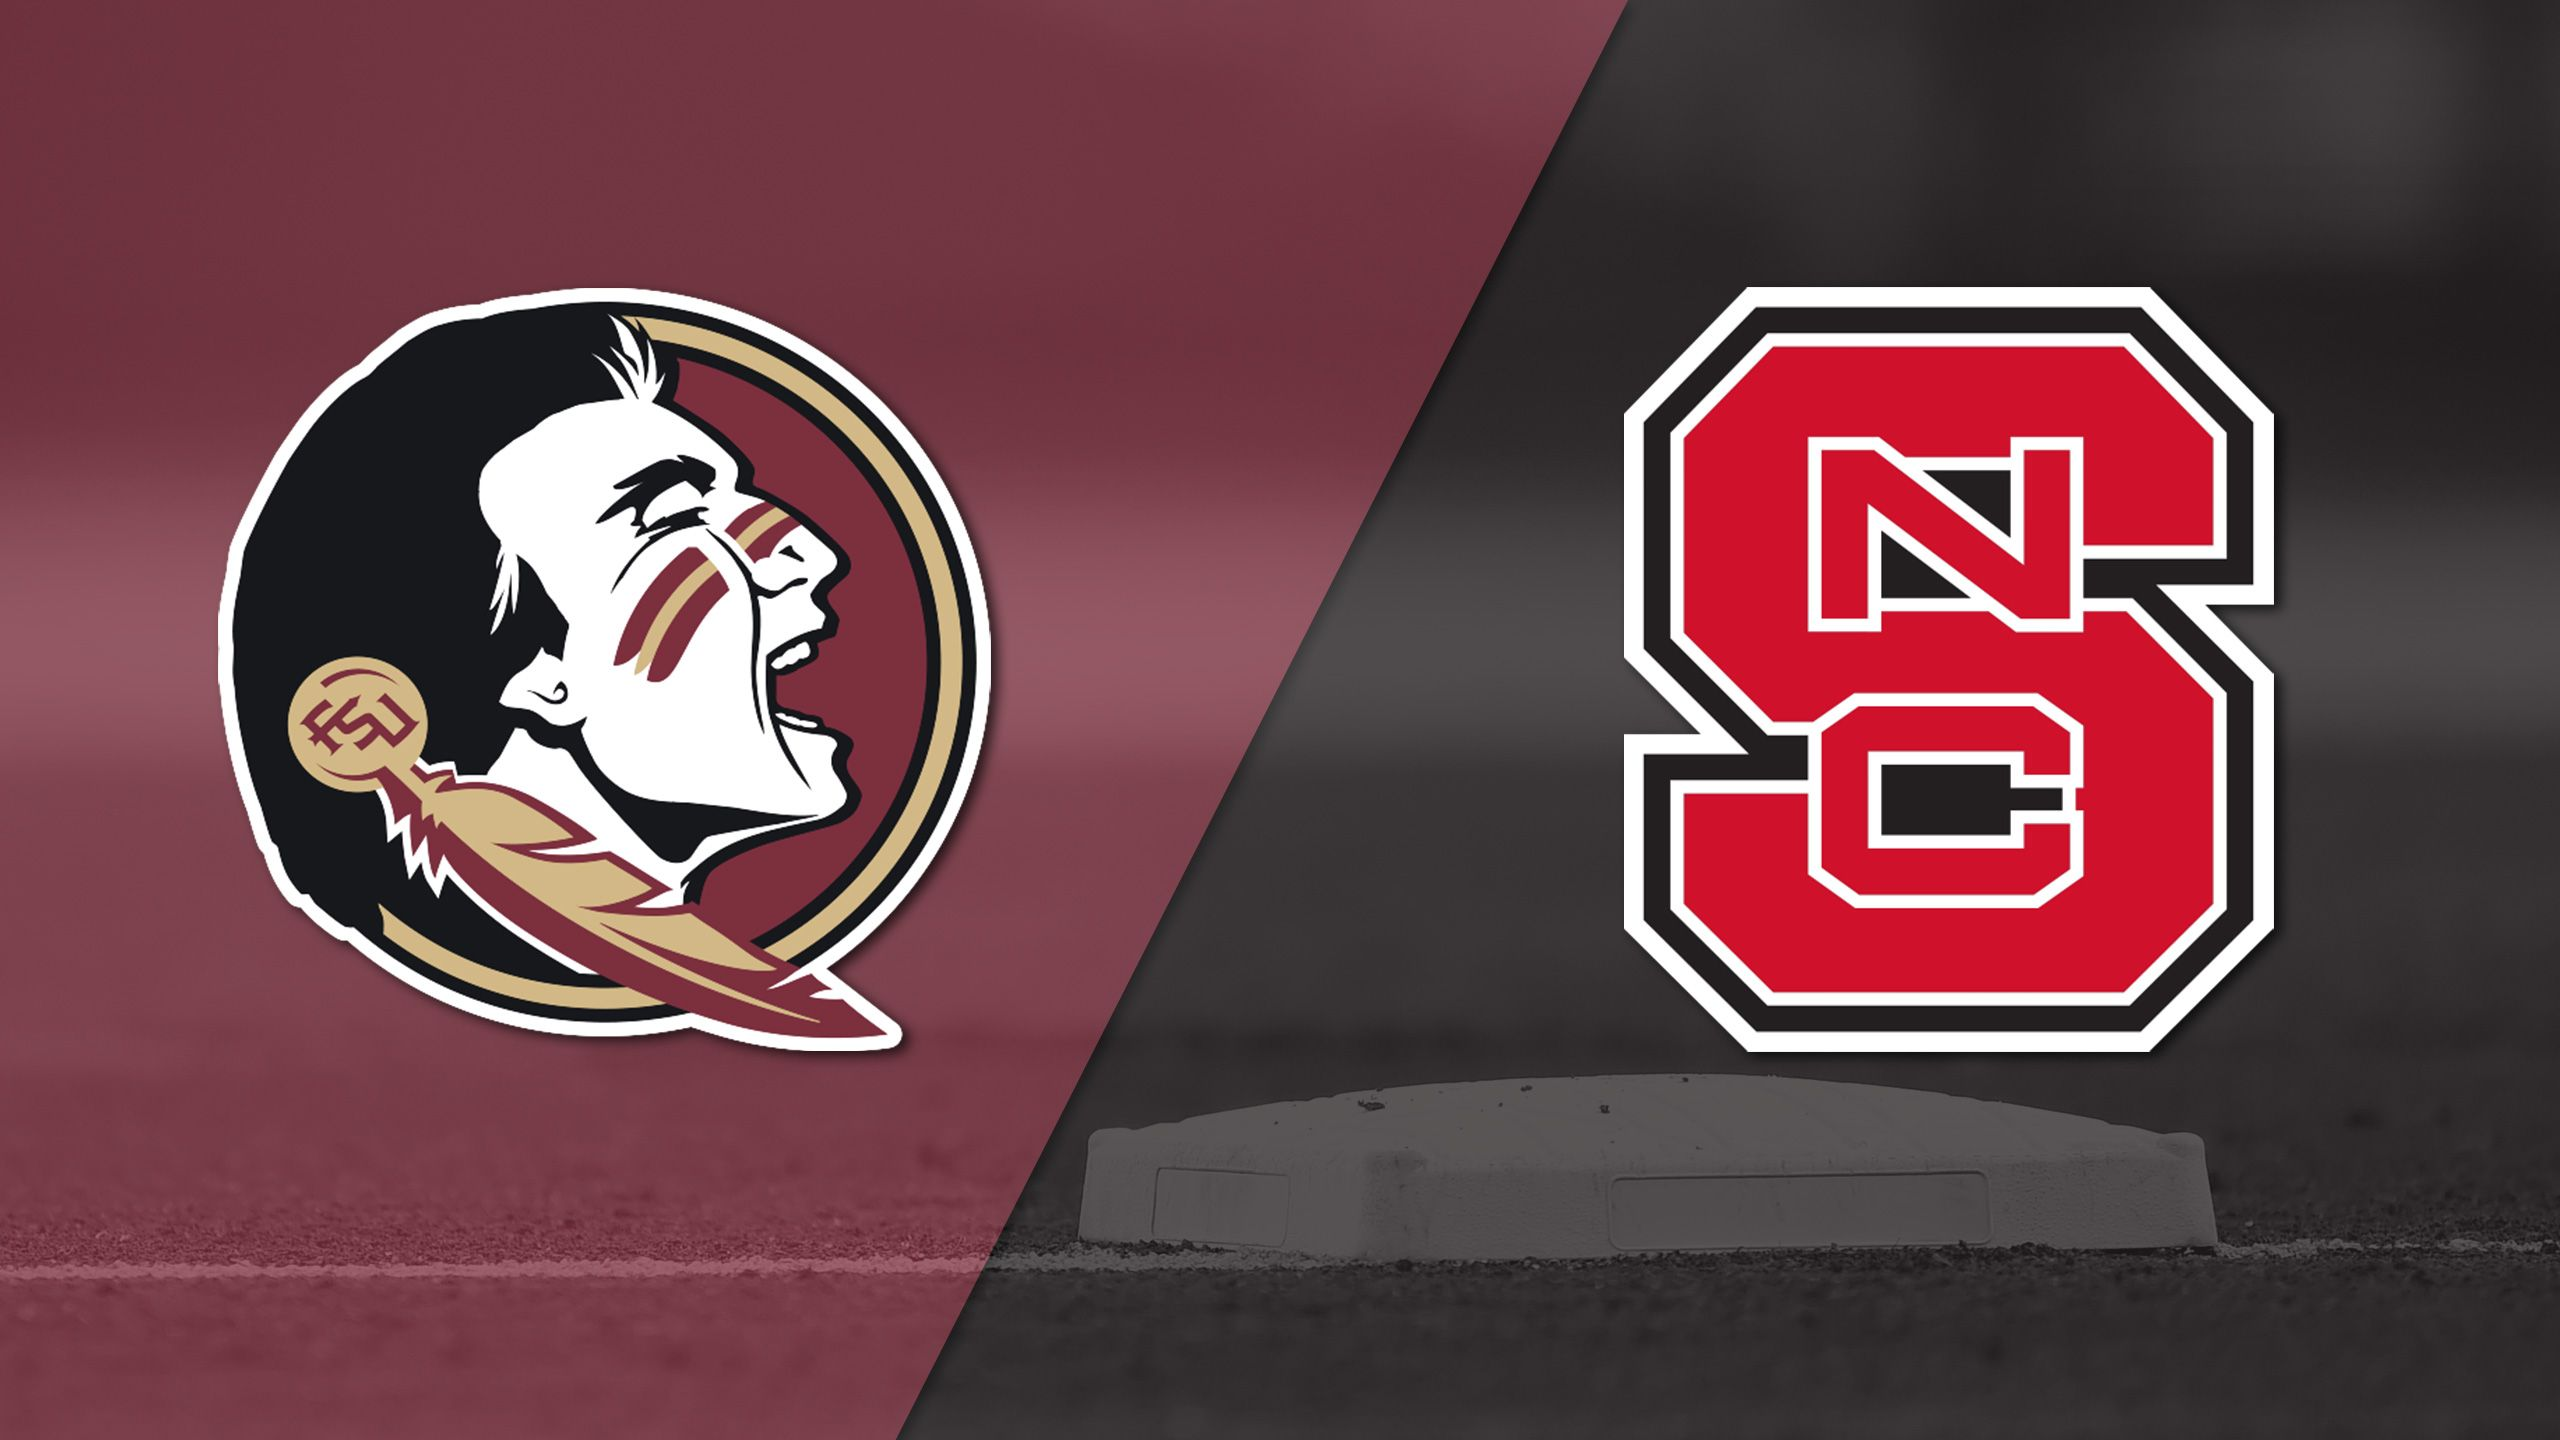 #19 Florida State vs. NC State (Baseball)